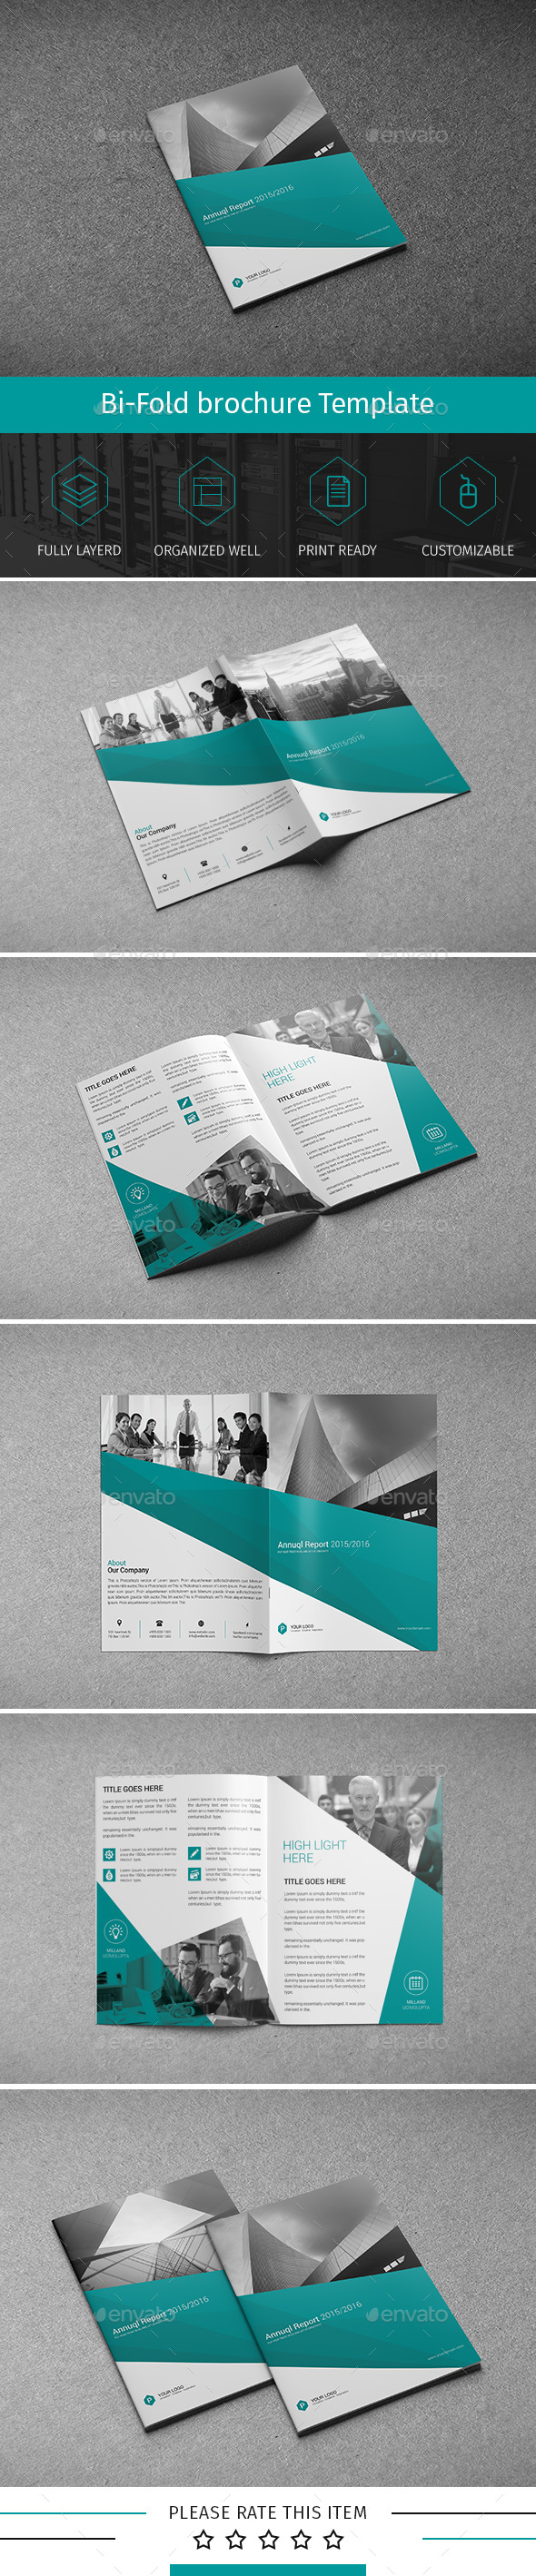 Corporate Bi-fold Brochure-Multipurpose 03 - Corporate Brochures